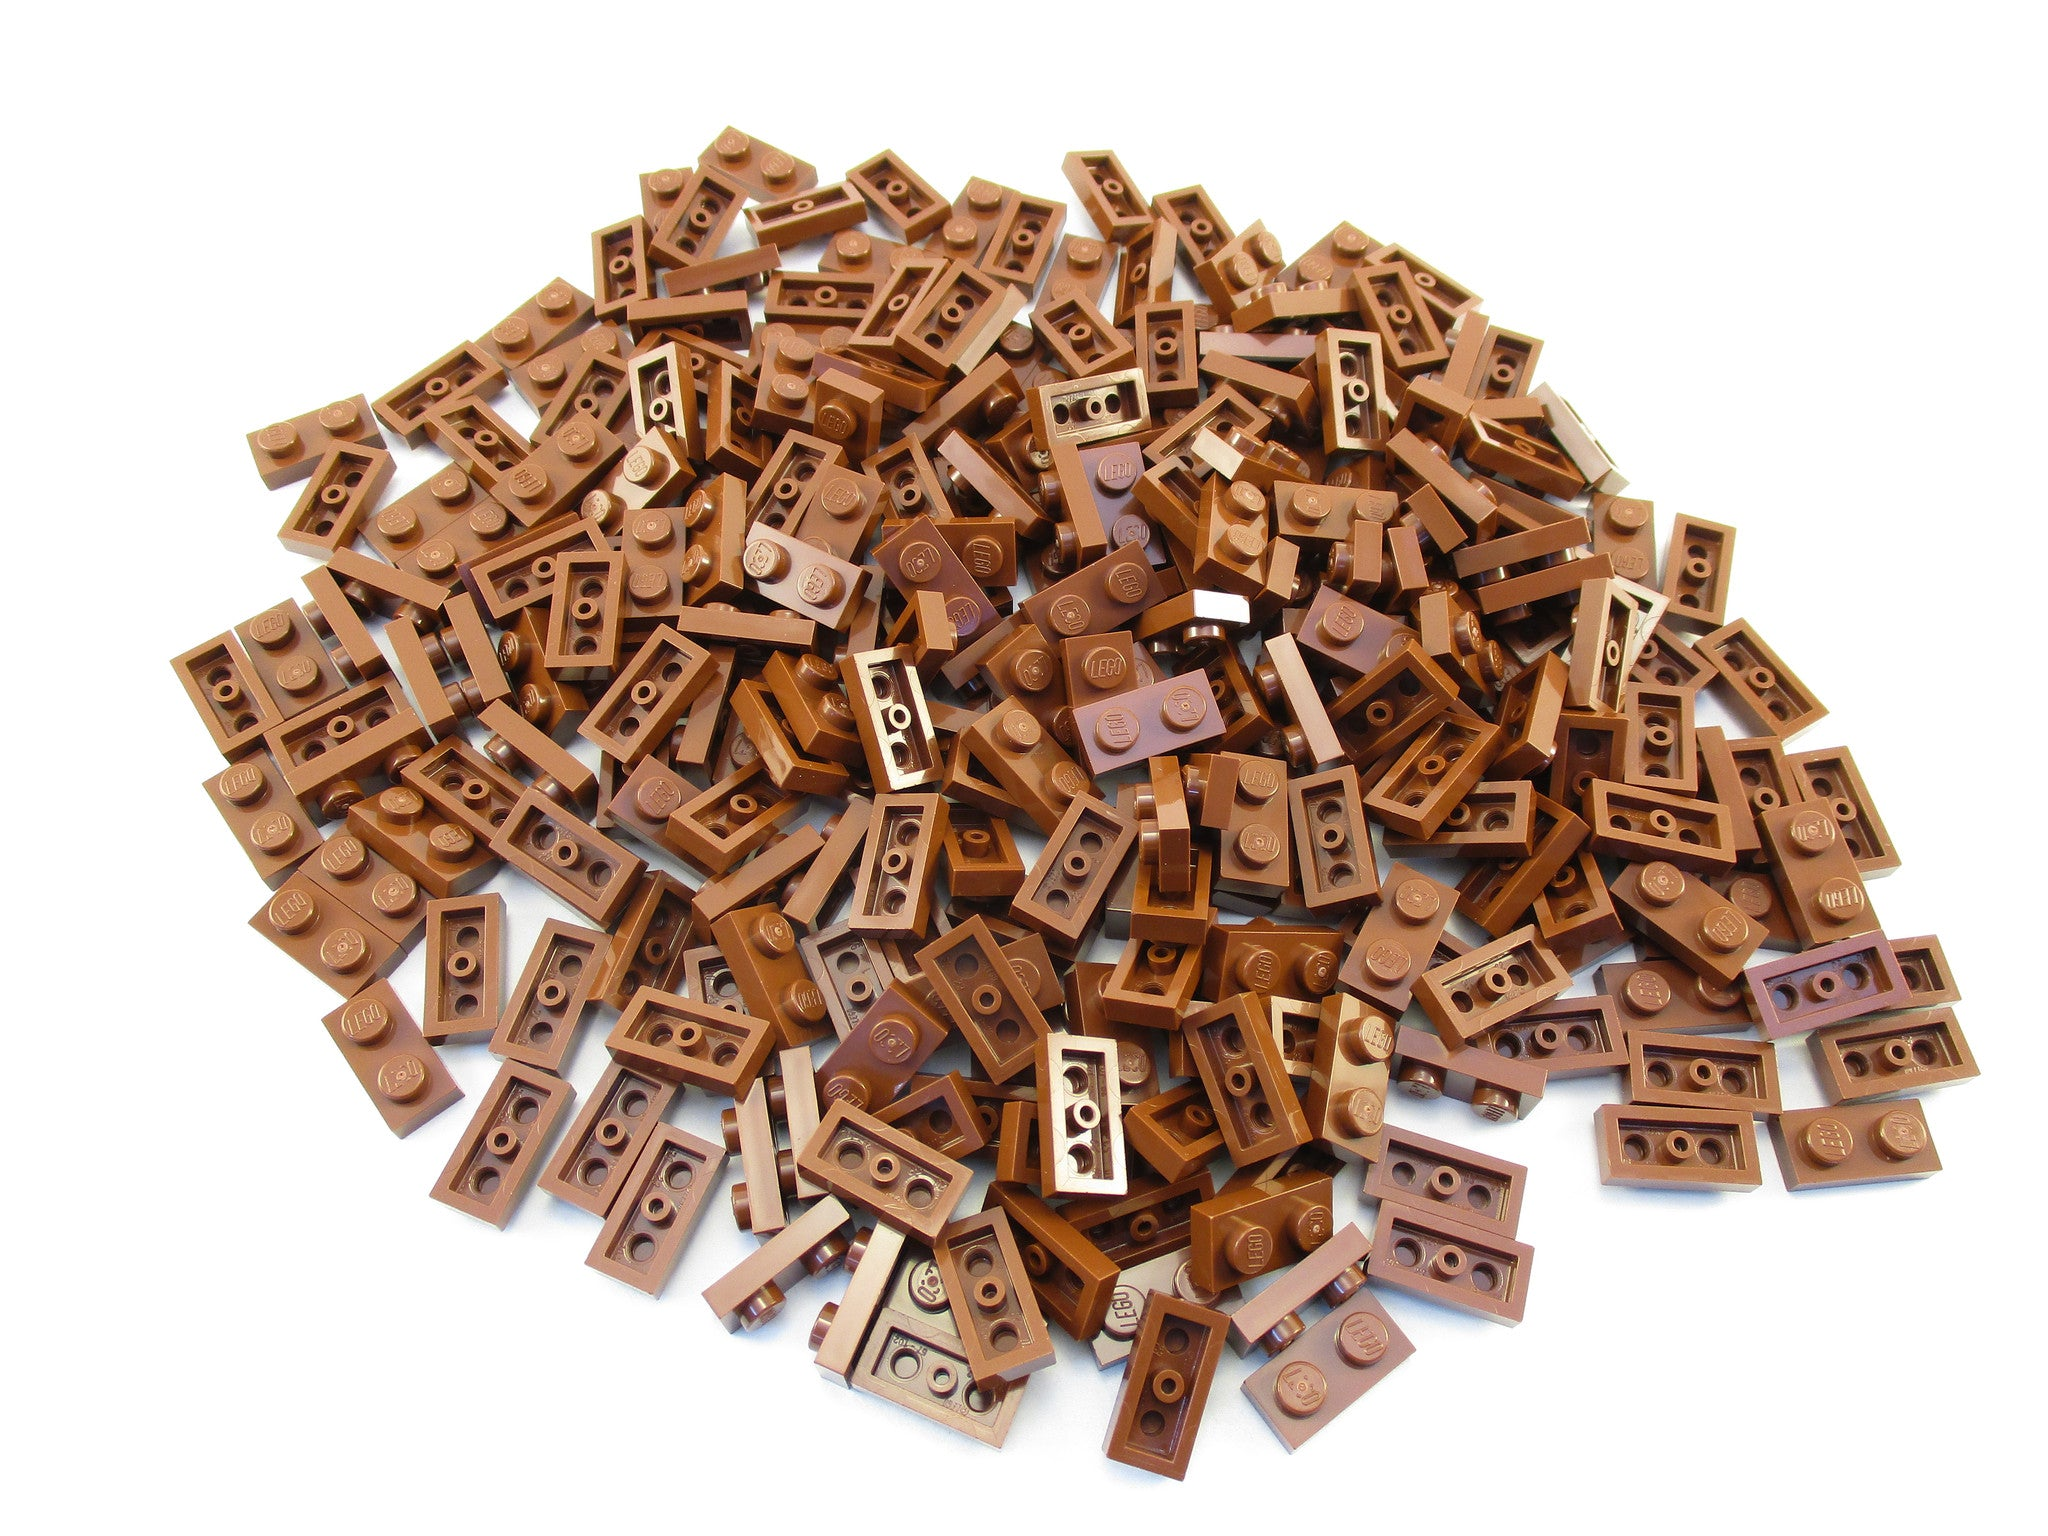 LEGO Reddish Brown Plate 1x2 Lot of 100 Parts Pieces 3023